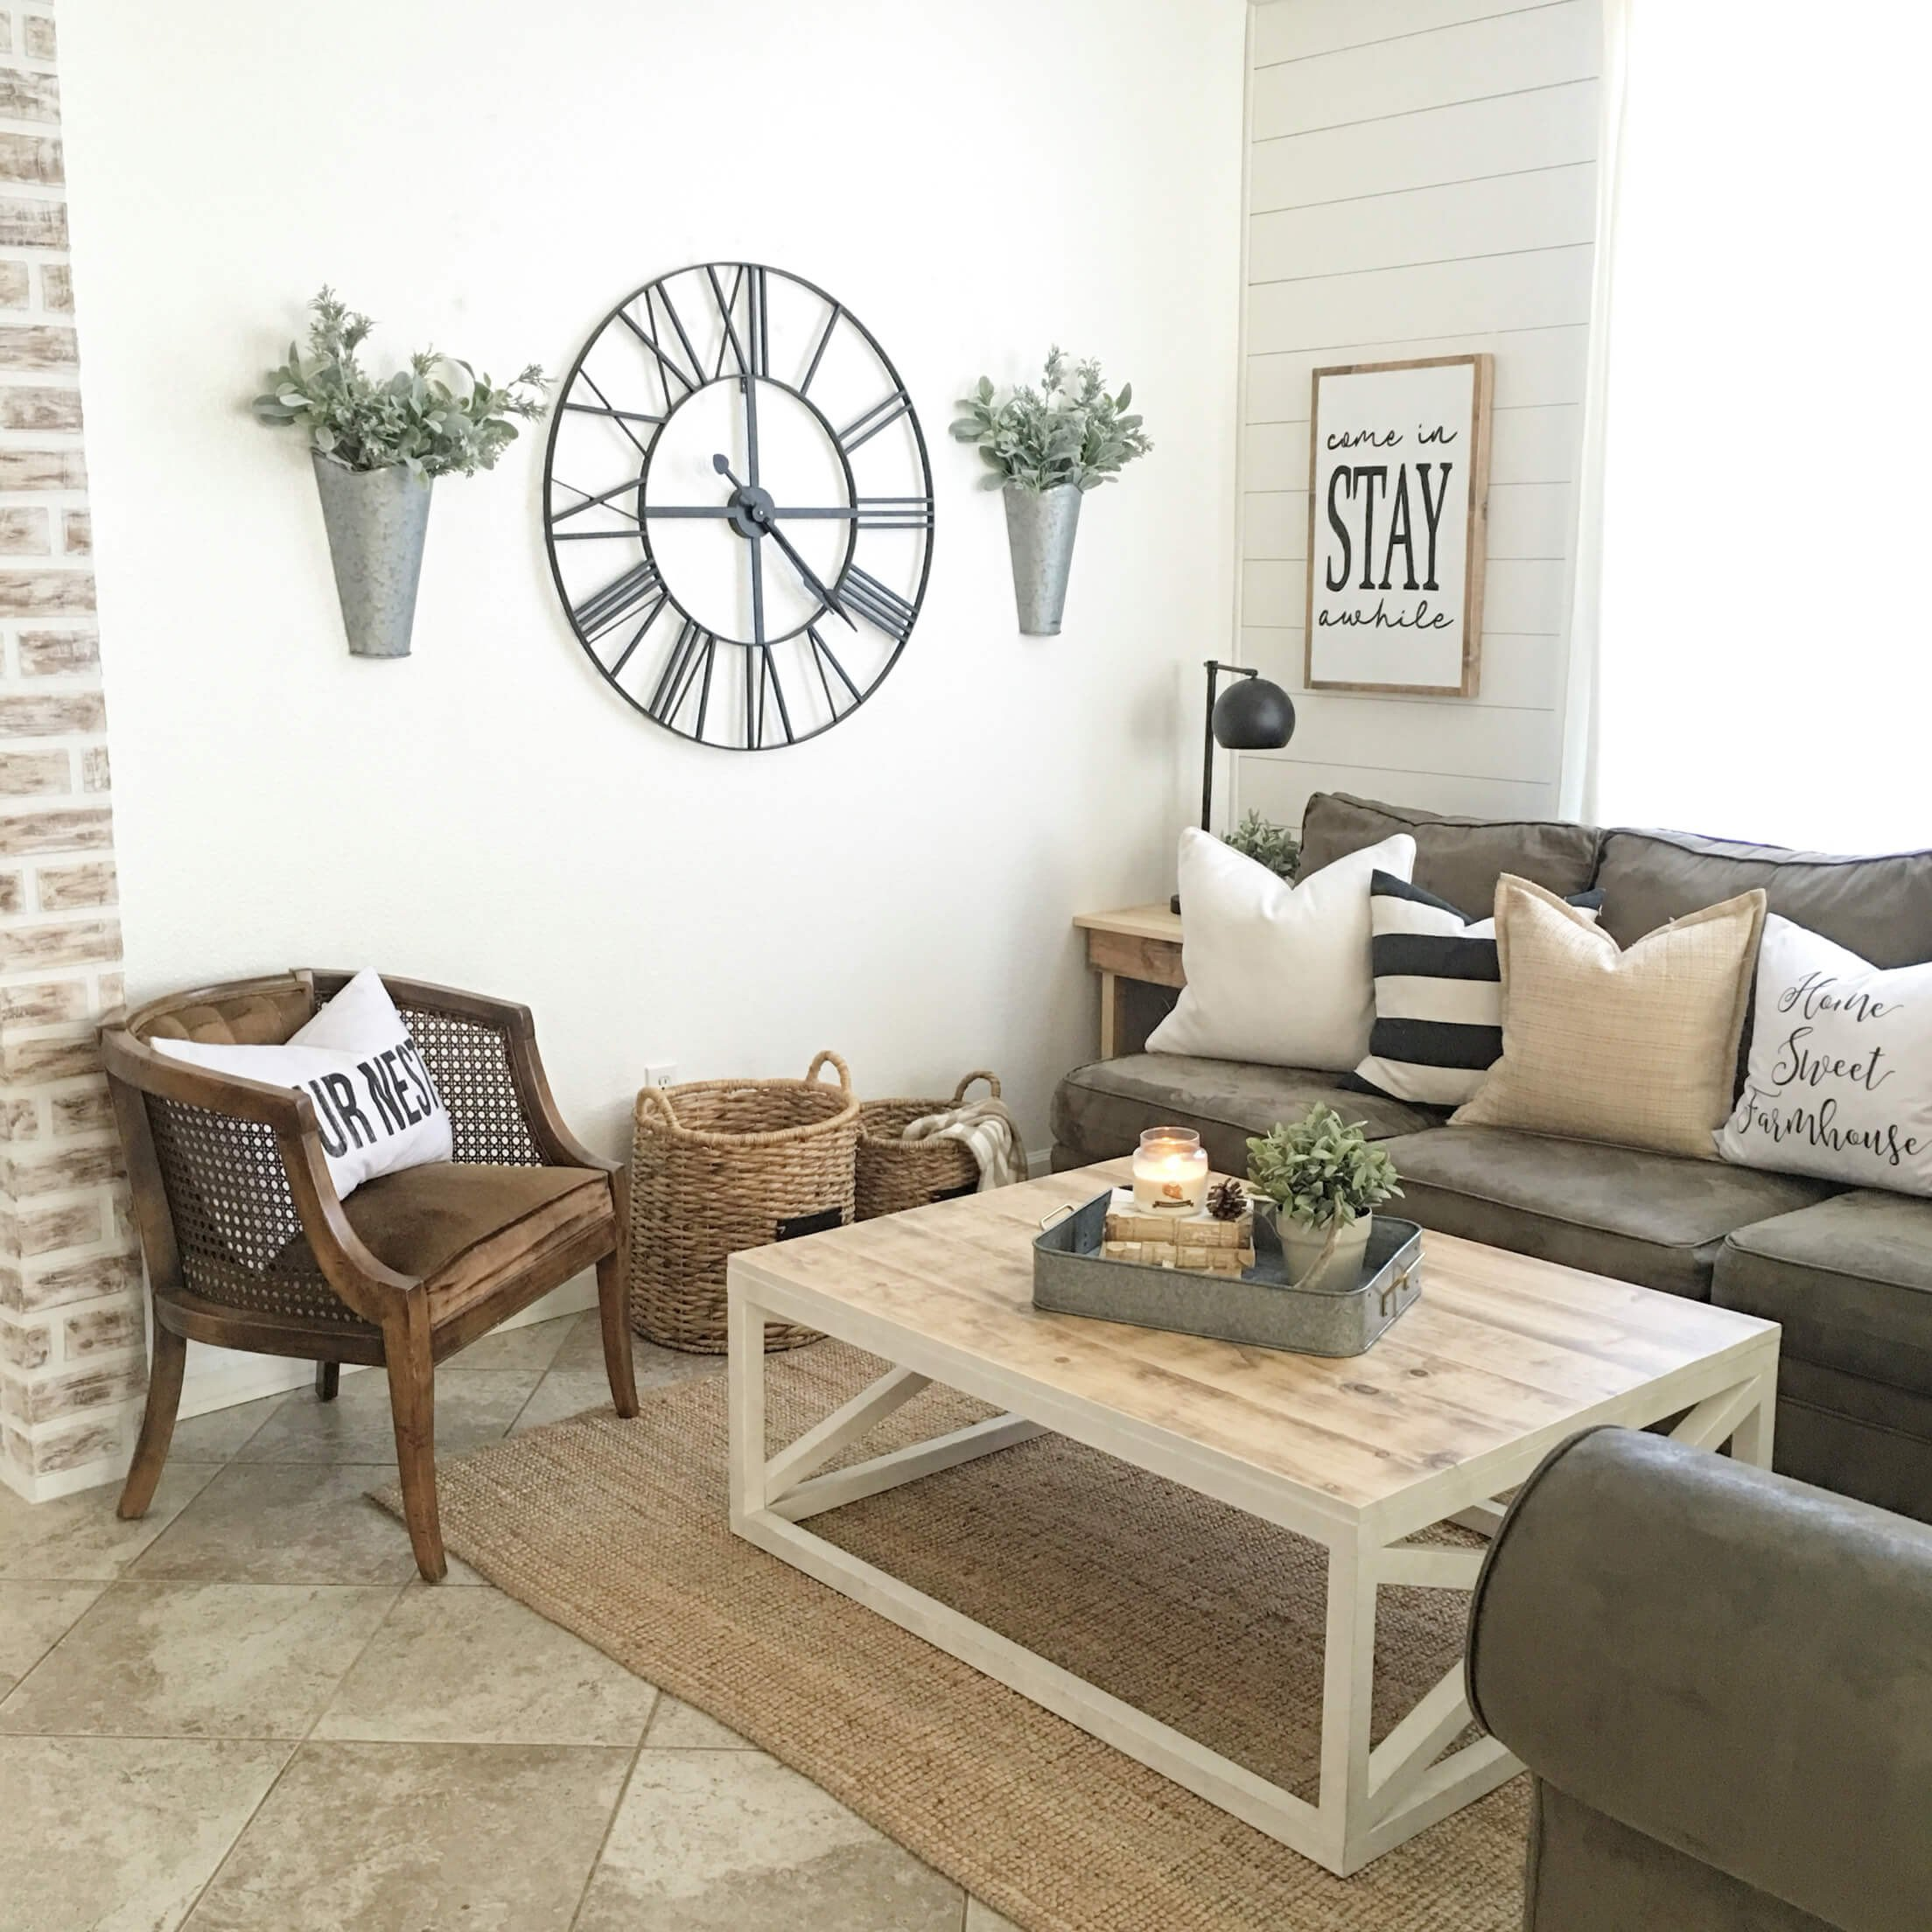 Small Farmhouse Living Room Ideas Elegant 25 Best Small Living Room Decor and Design Ideas for 2019